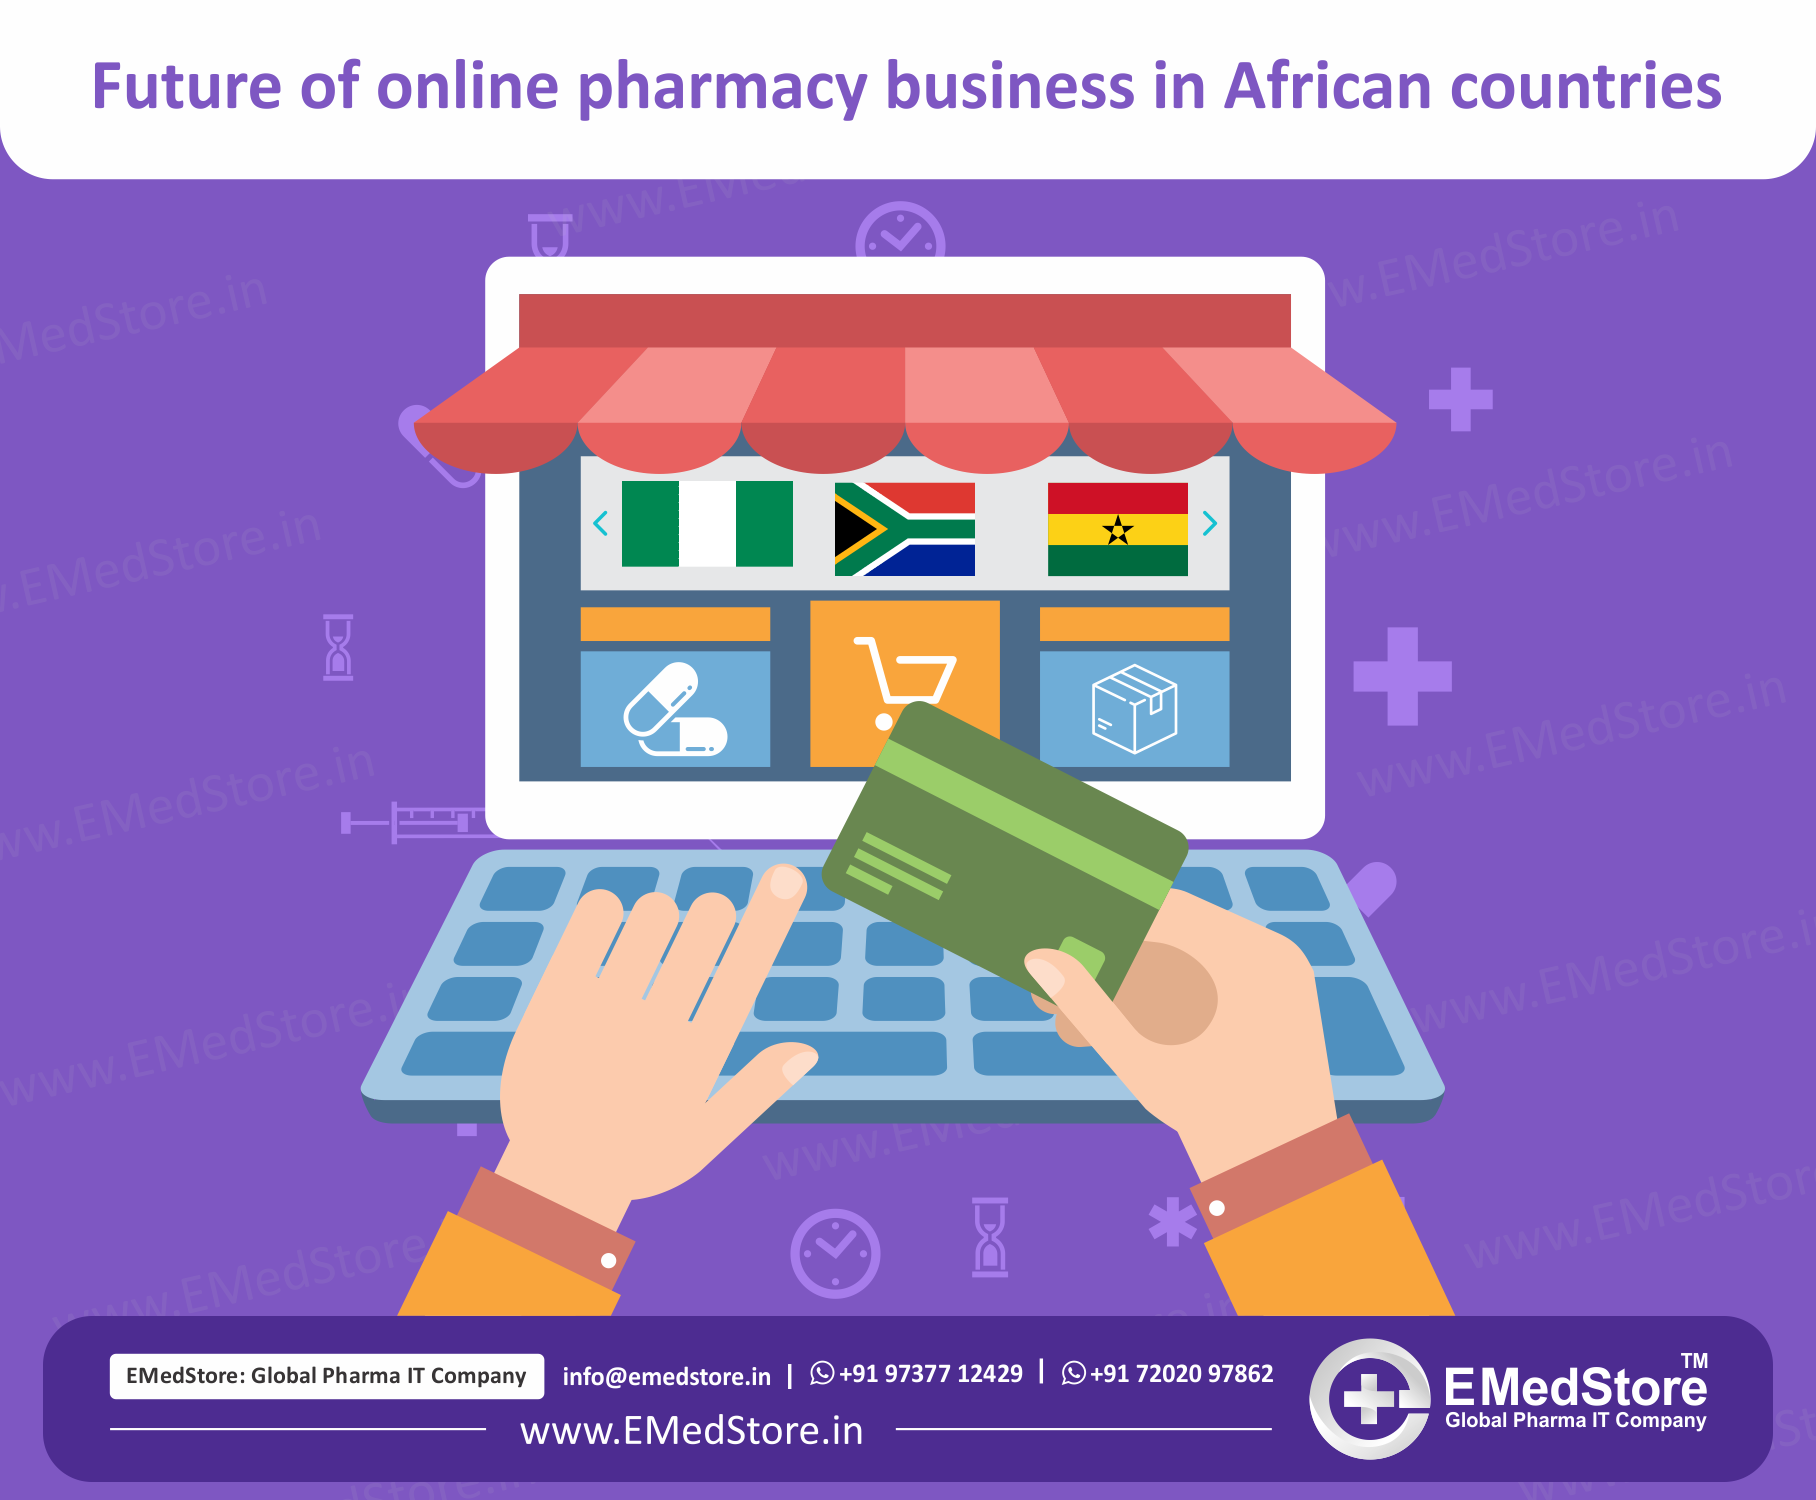 Future of online pharmacy business in African countries